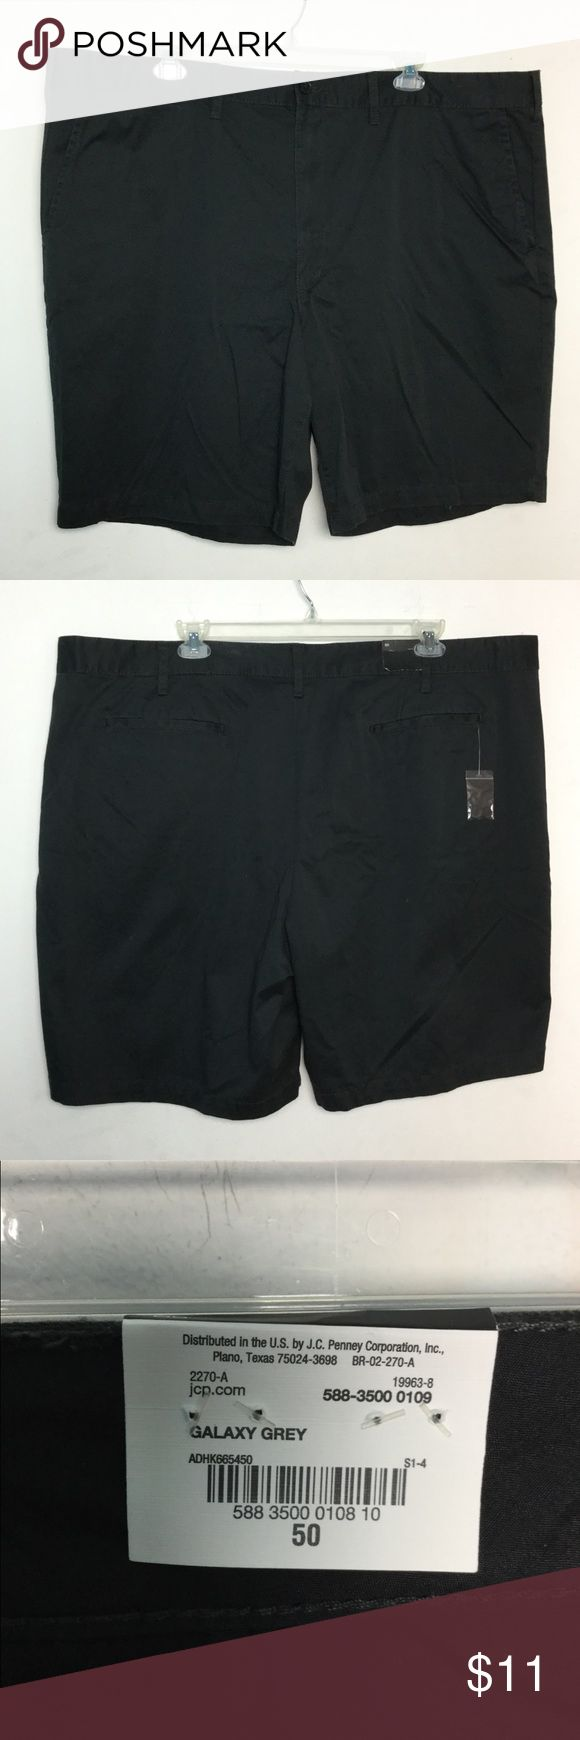 """Claiborne 50 Golf Shorts Khakis Chinos Black NWT NWT new with tags retail price $50 Black ( Galaxy Grey ) very Dark Gray almost Black Flat Front Casual  Men's big & tall size 50 Claiborne Golf Classic fit shorts 10"""" Inseam  100% Cotton 5 Pocket  1 bin 35 UPC: 5883500010810 Buy 3 or more items get free shipping. Must message me first so I can set up your bundle. $$$$$$ Don't forget you can always bundle other items and pay one shipping price Claiborne Shorts"""